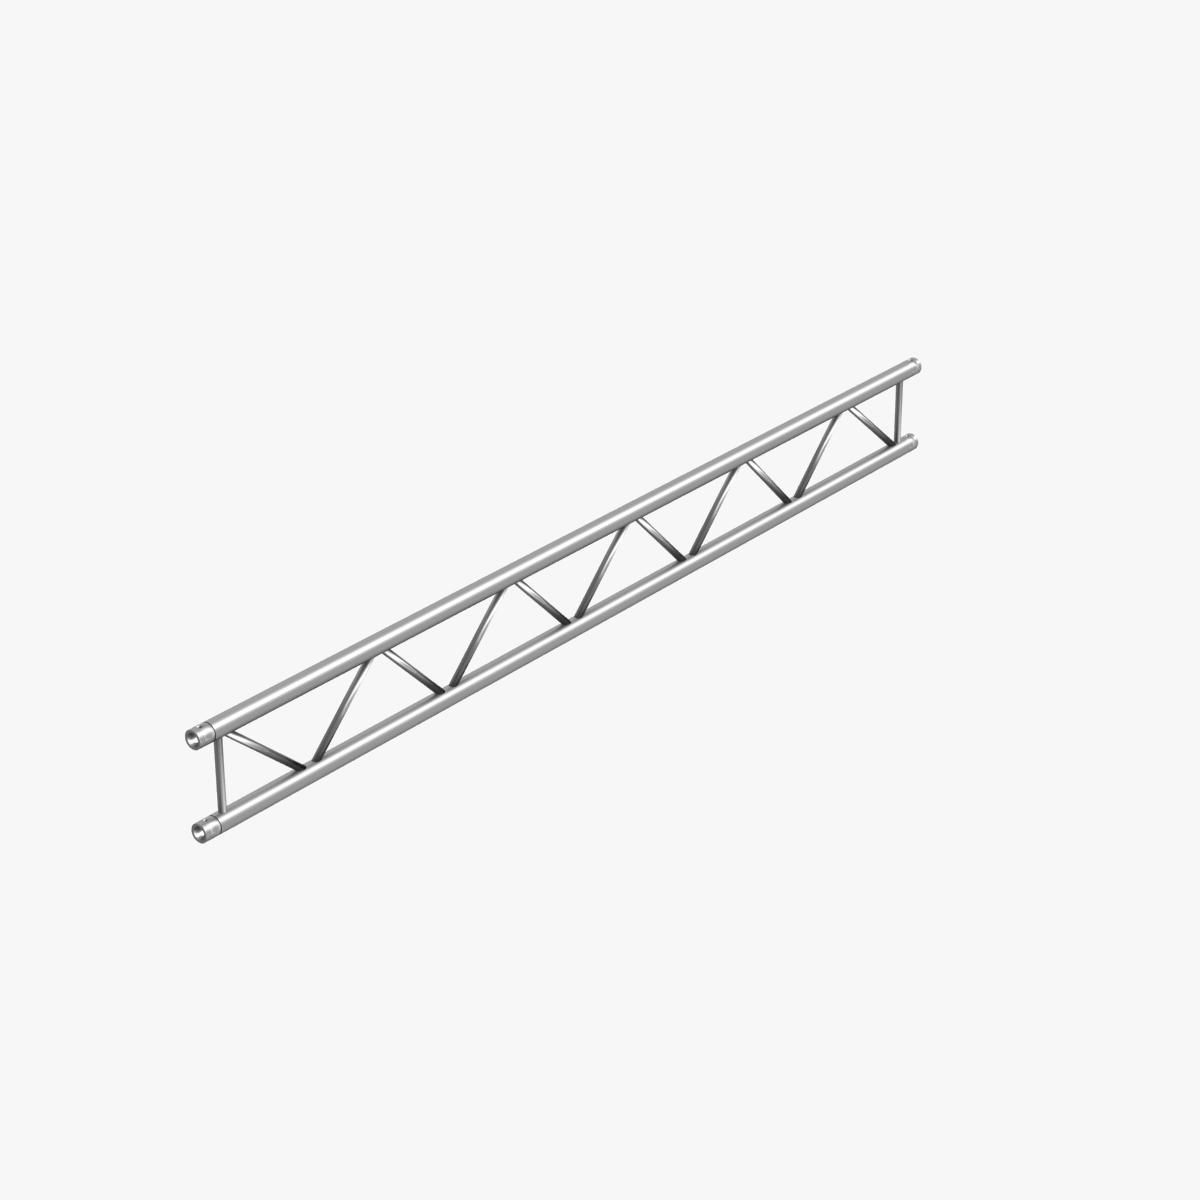 beam trusses (collection 24 modular pieces) 3d model 3ds max dxf fbx bmp blend c4d dae other obj 268727